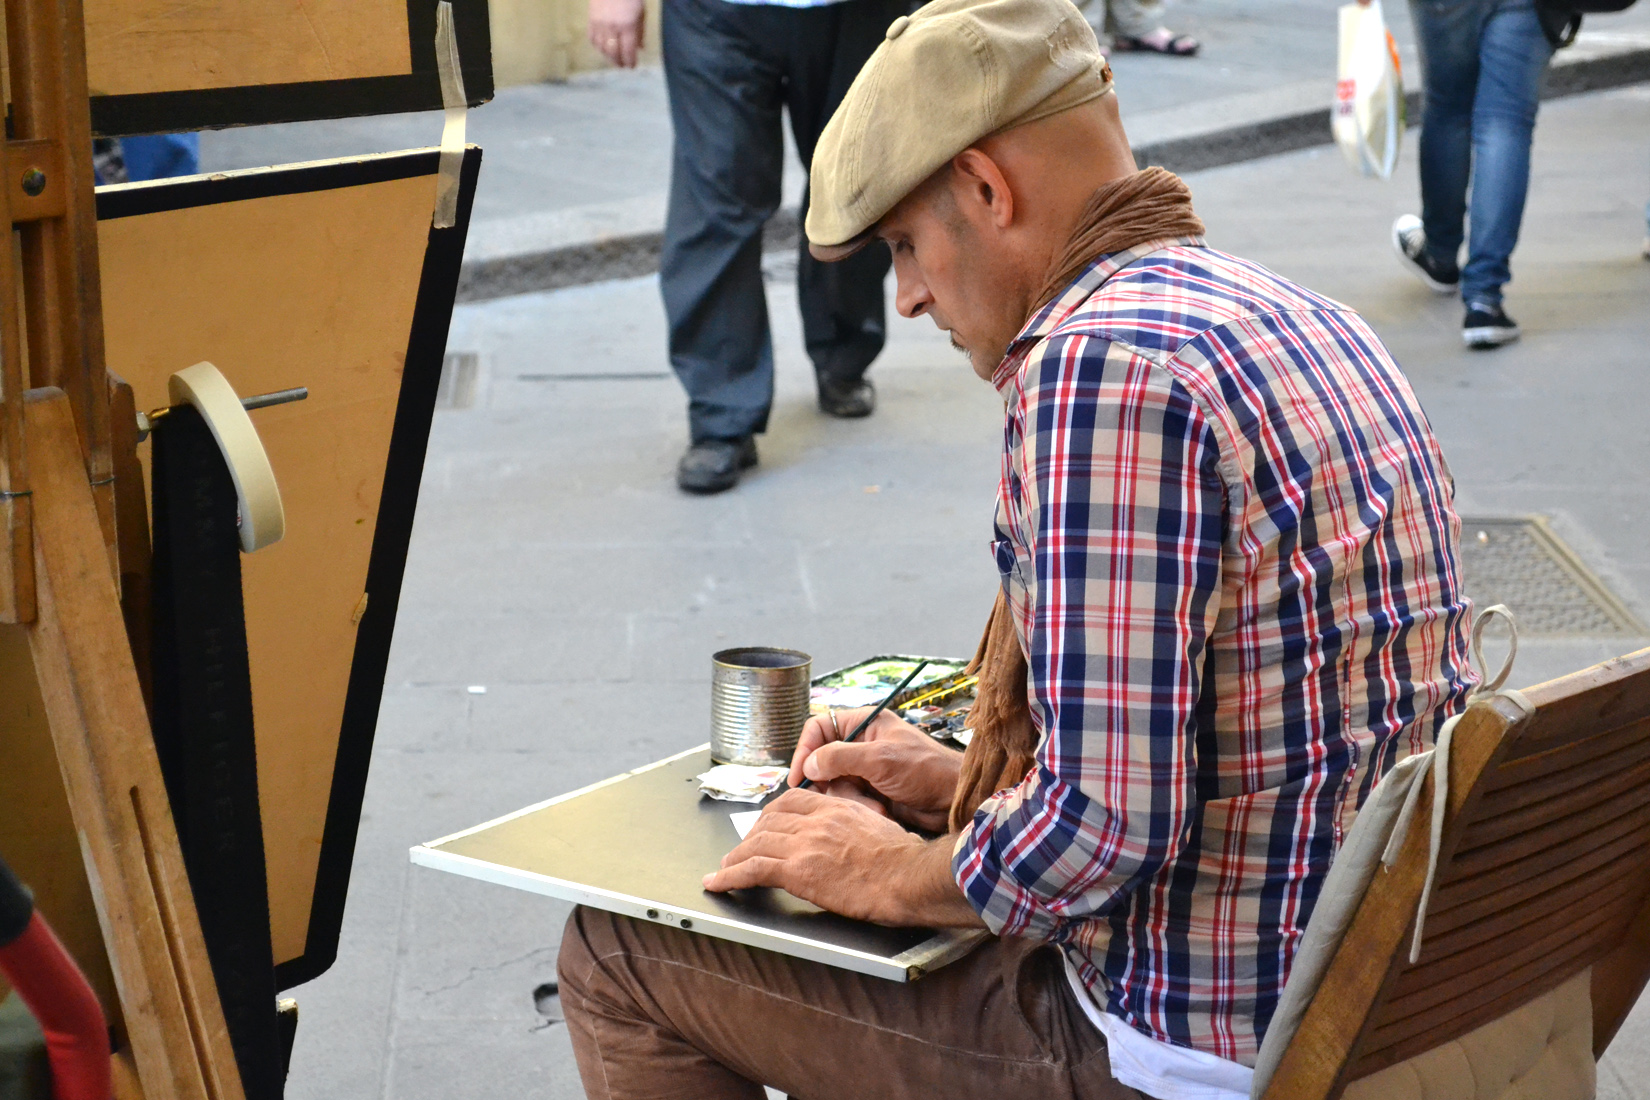 Artist at Work, Artist, Drawing, Florence, Italy, HQ Photo